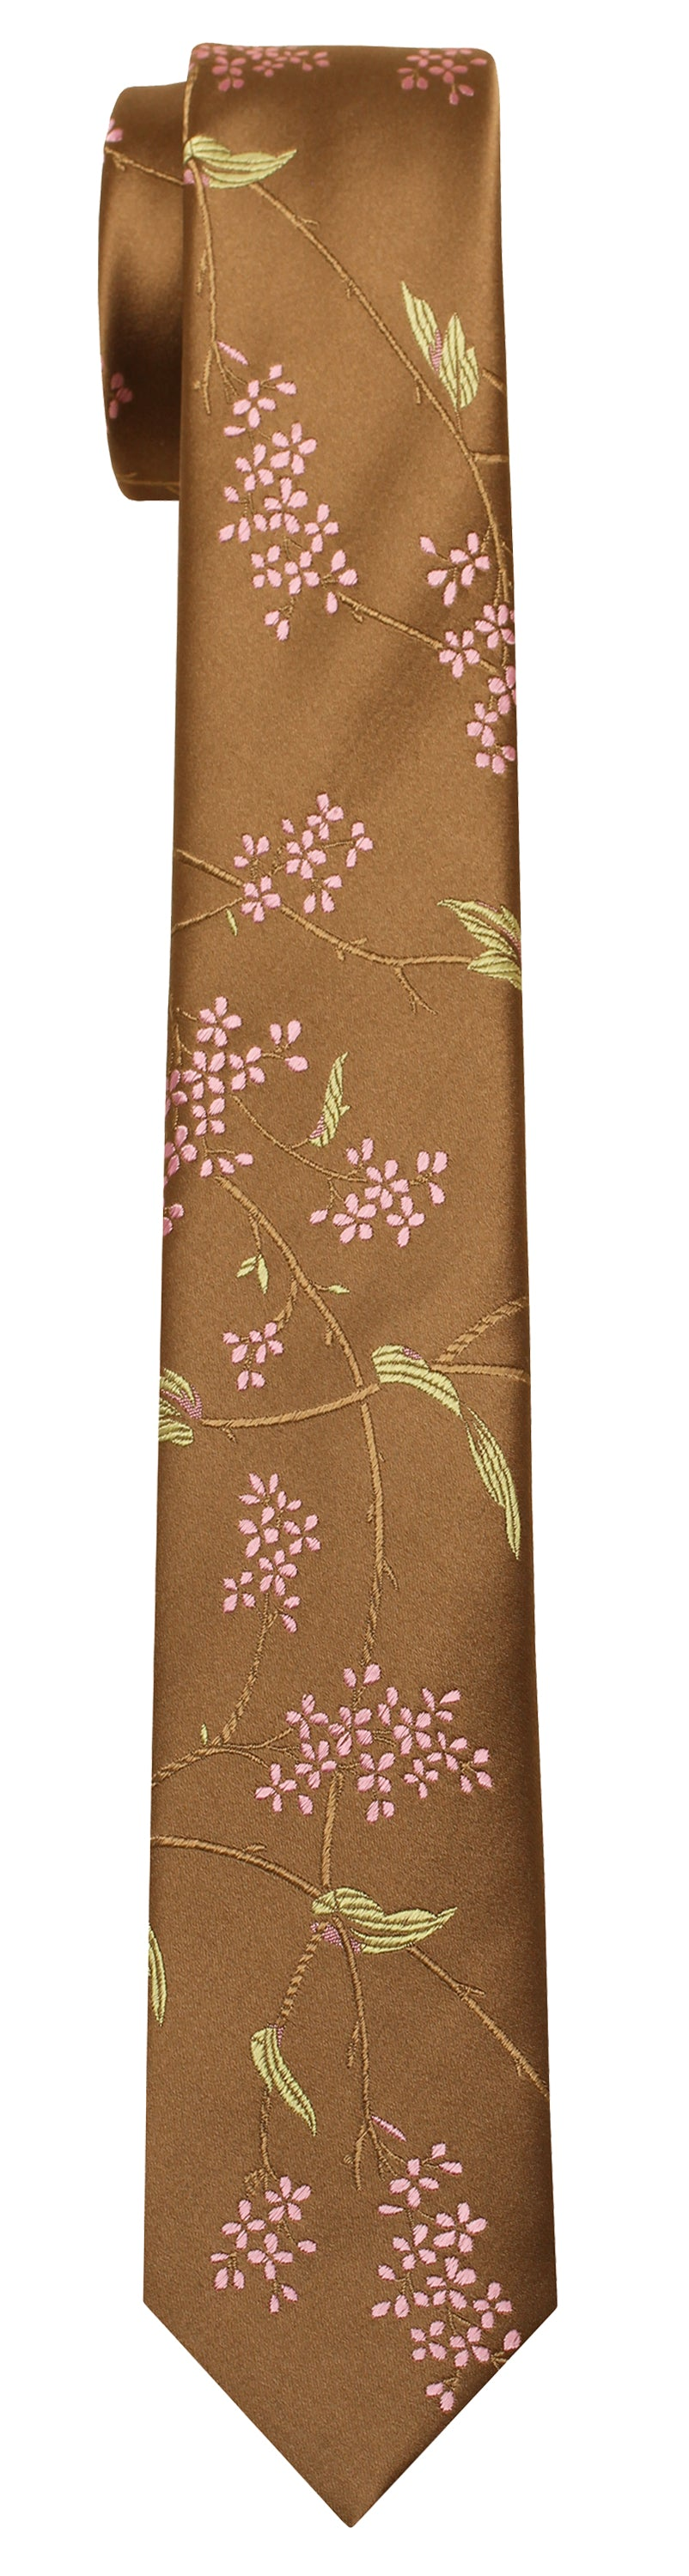 Mimi Fong Leaf & Twig Tie in Biscuit